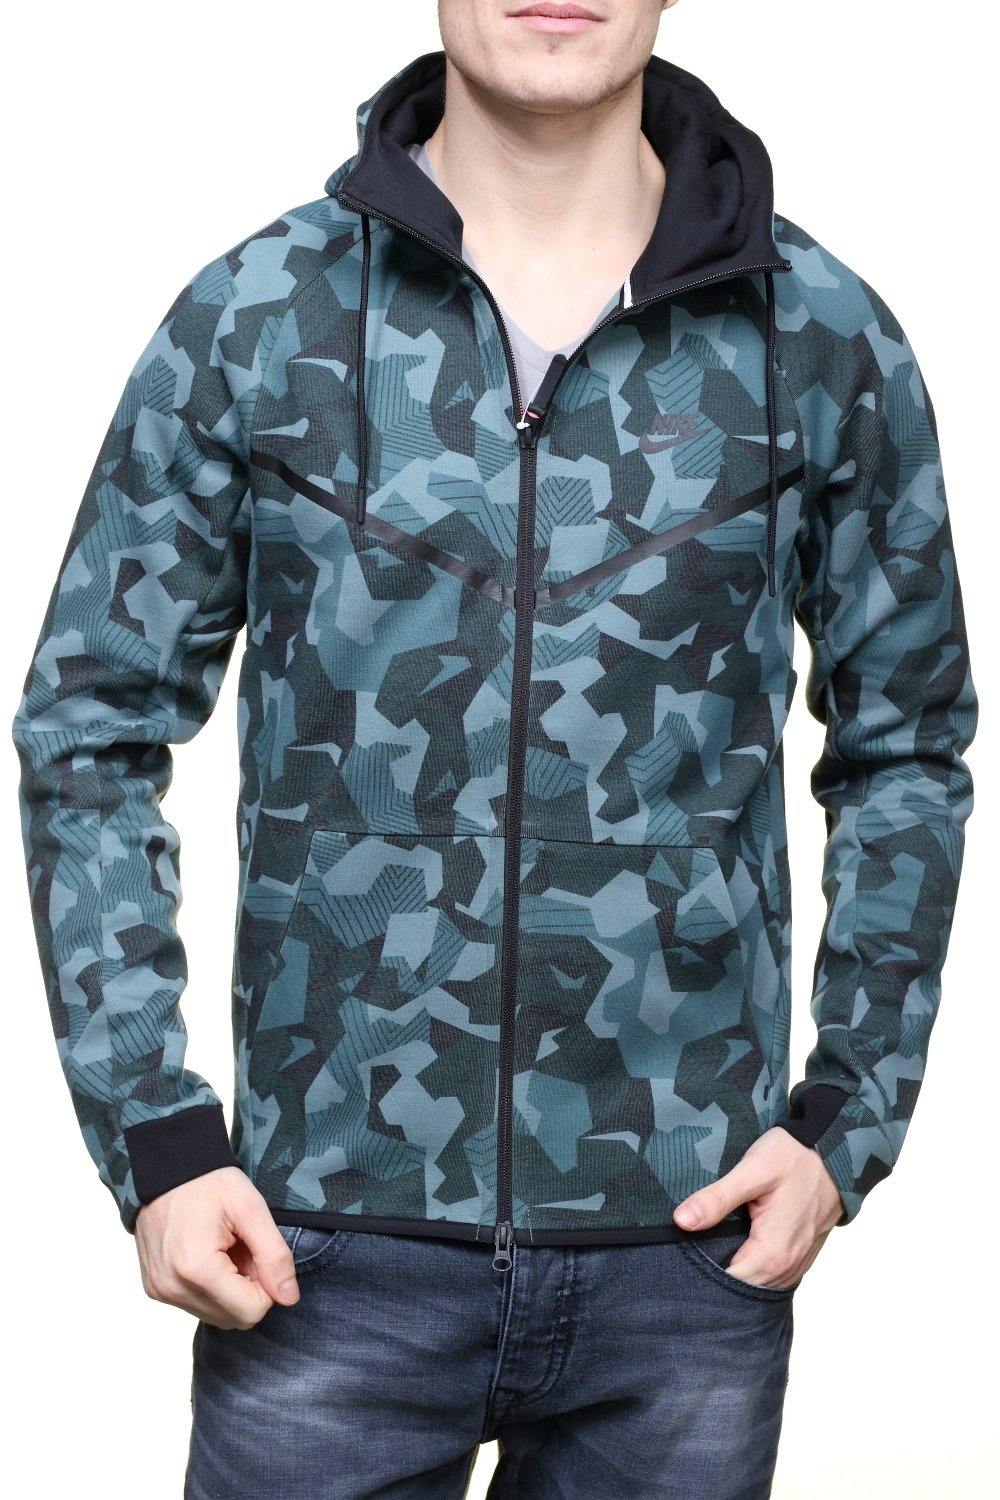 Nike Sportswear Tech Fleece Camo Mens Windrunner 835866 Jacket (Medium, Grey Camo 392) by NIKE